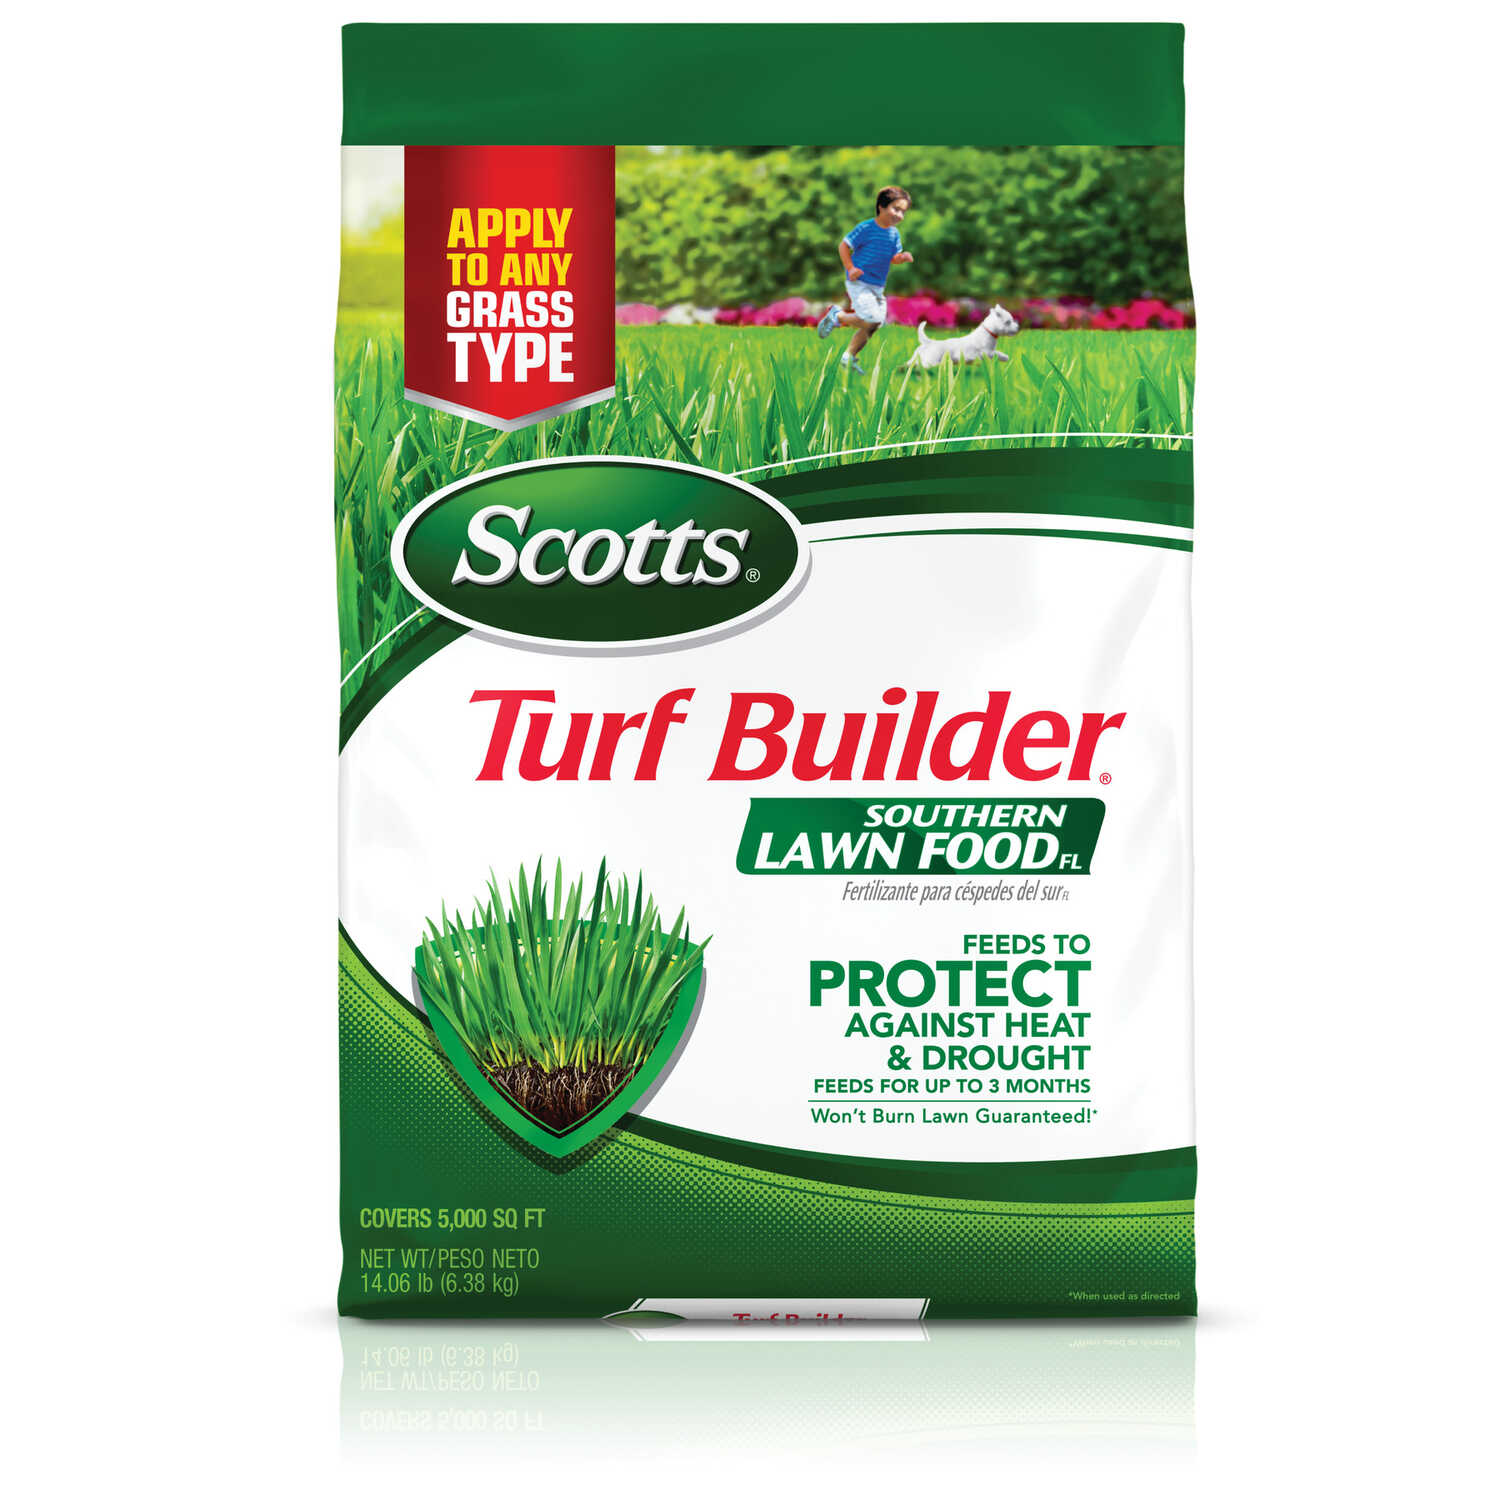 Scotts  Turf Builder  32-0-10  Lawn Food  For All Florida Grasses 14.06 lb.